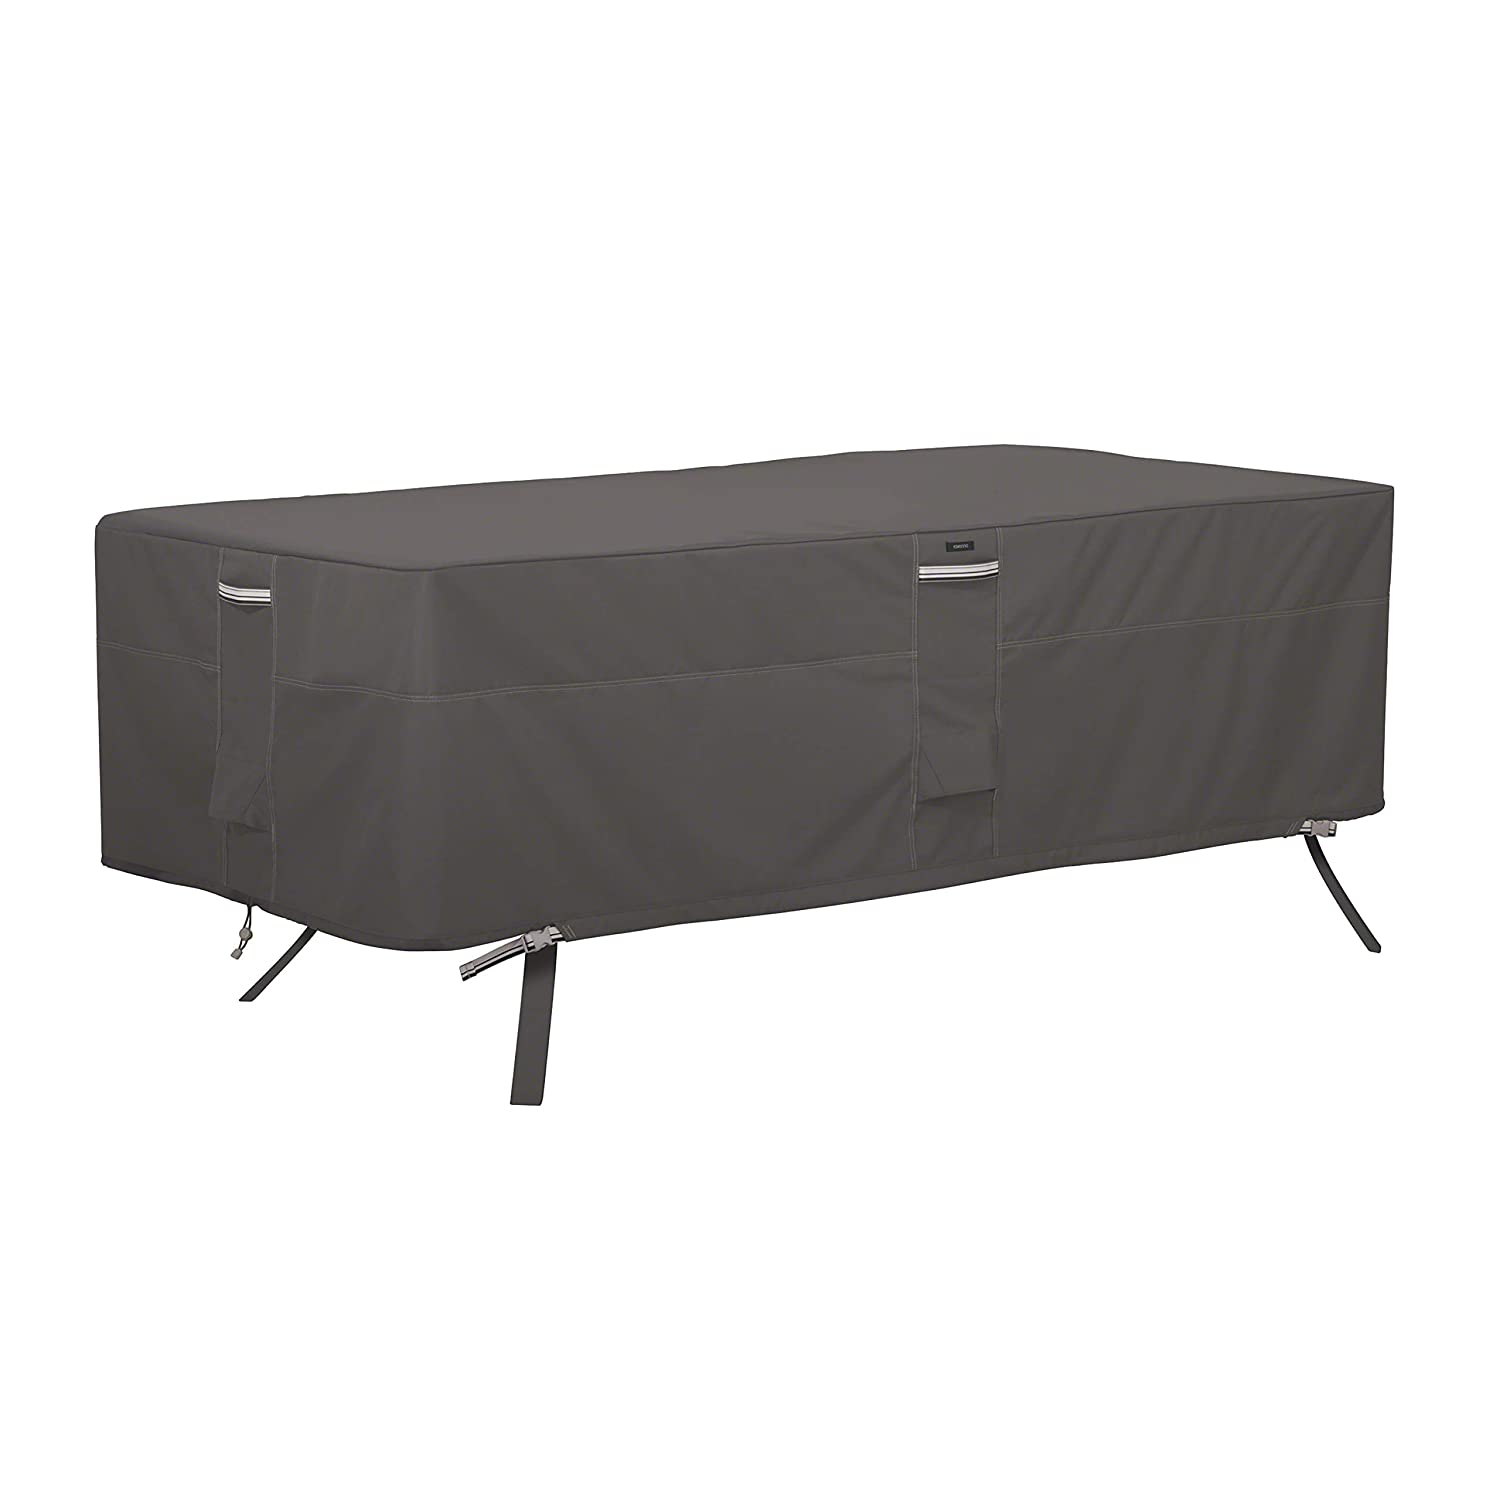 Classic Accessories Ravenna Rectangular Oval Patio Table Cover, X-Large